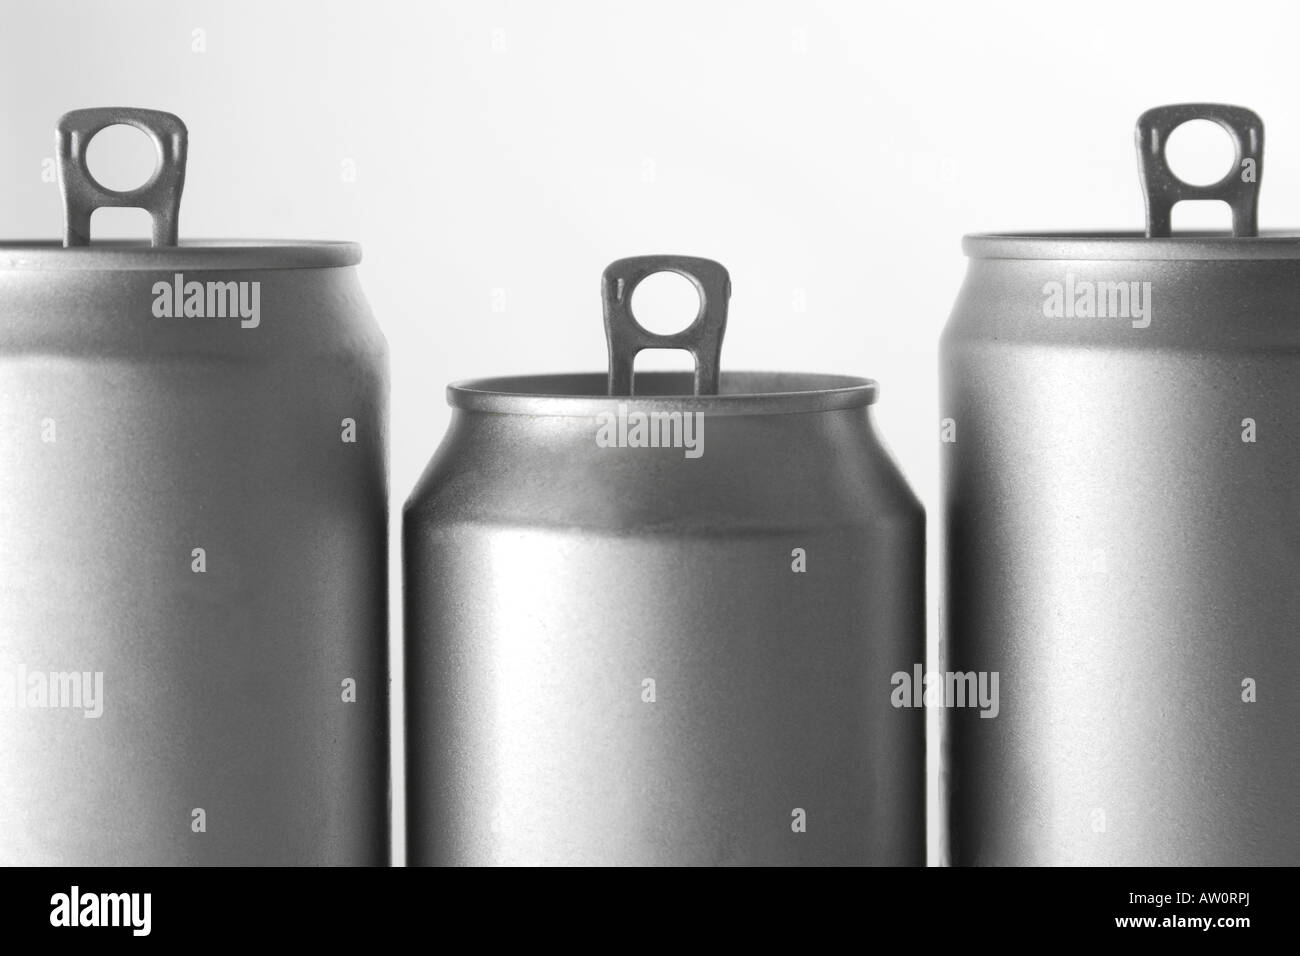 a row of soft drinks cans - Stock Image